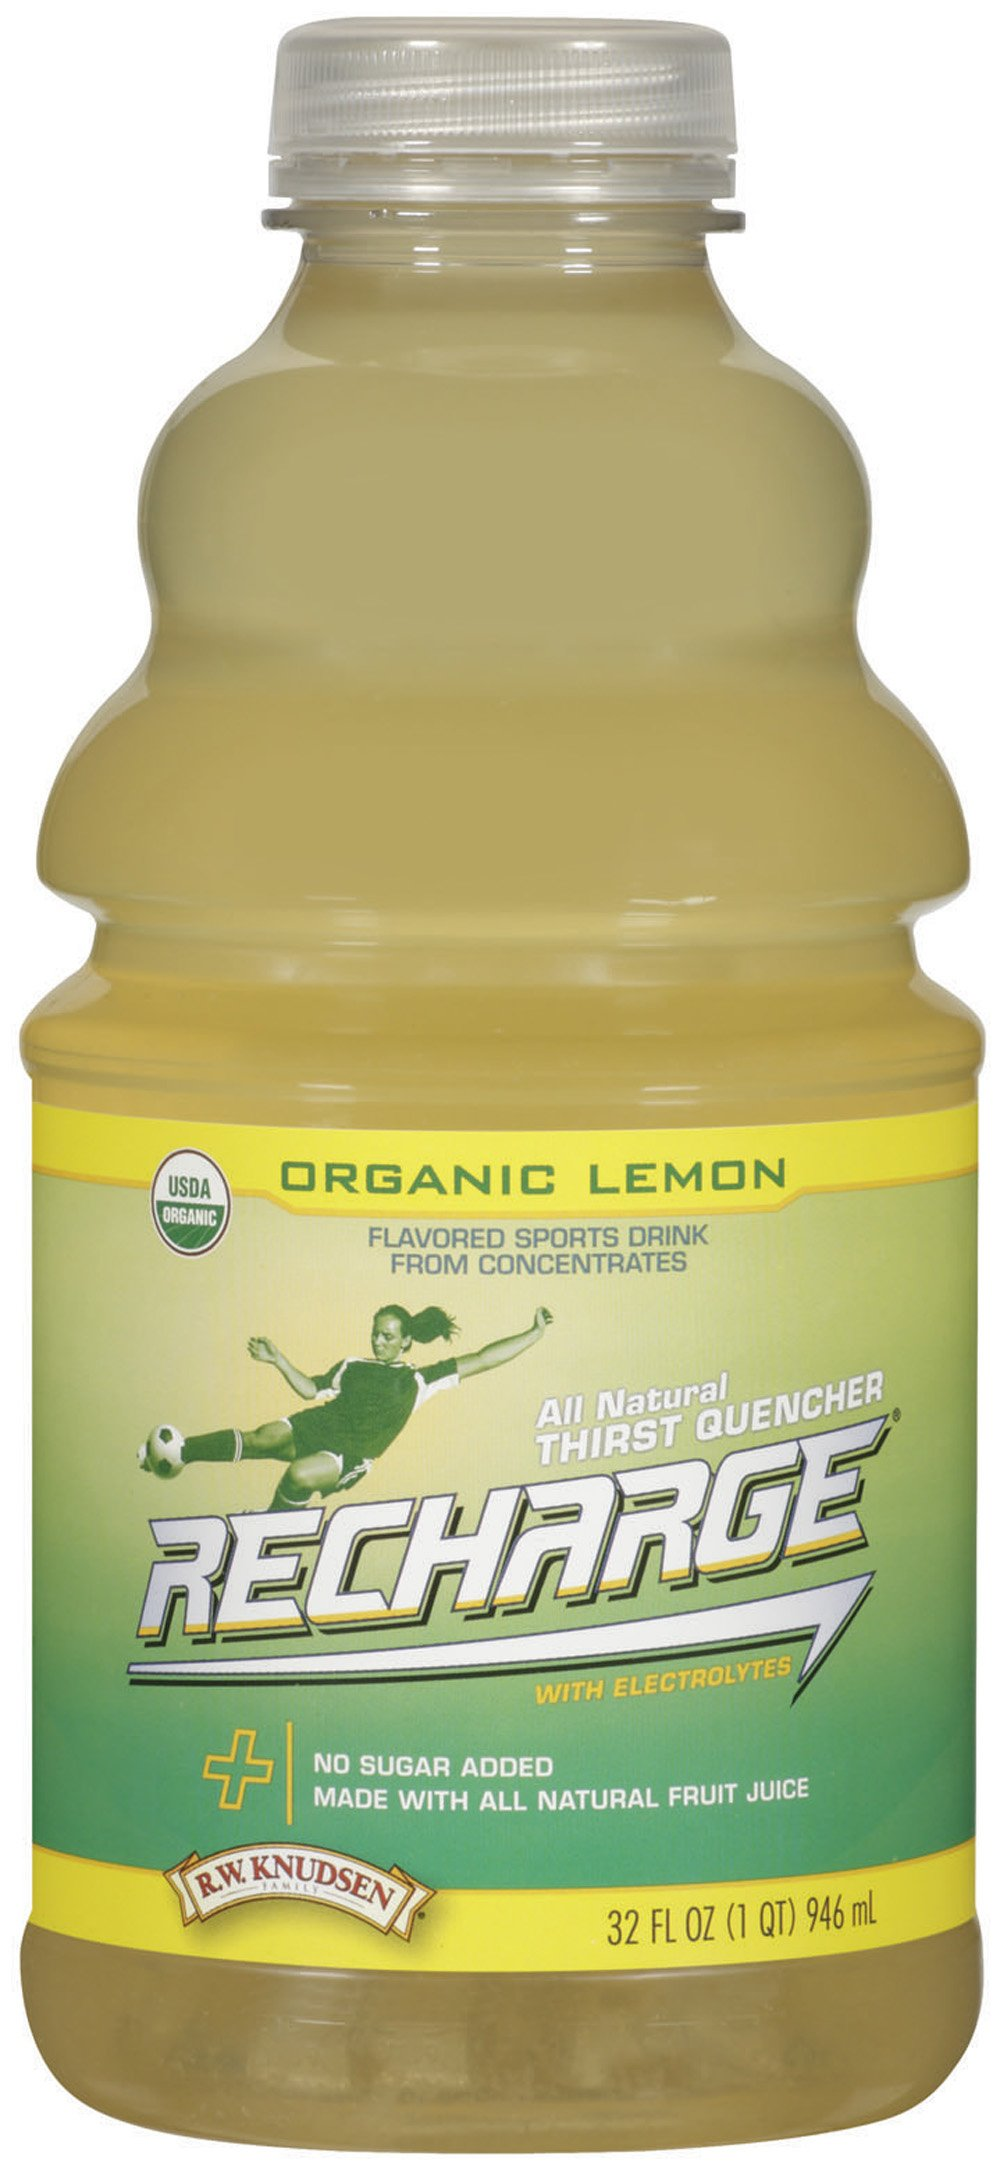 R.W. Knudsen Family Recharge Organic Lemon Flavored Sports Beverage Mix, 32 Ounce (Pack of 12)